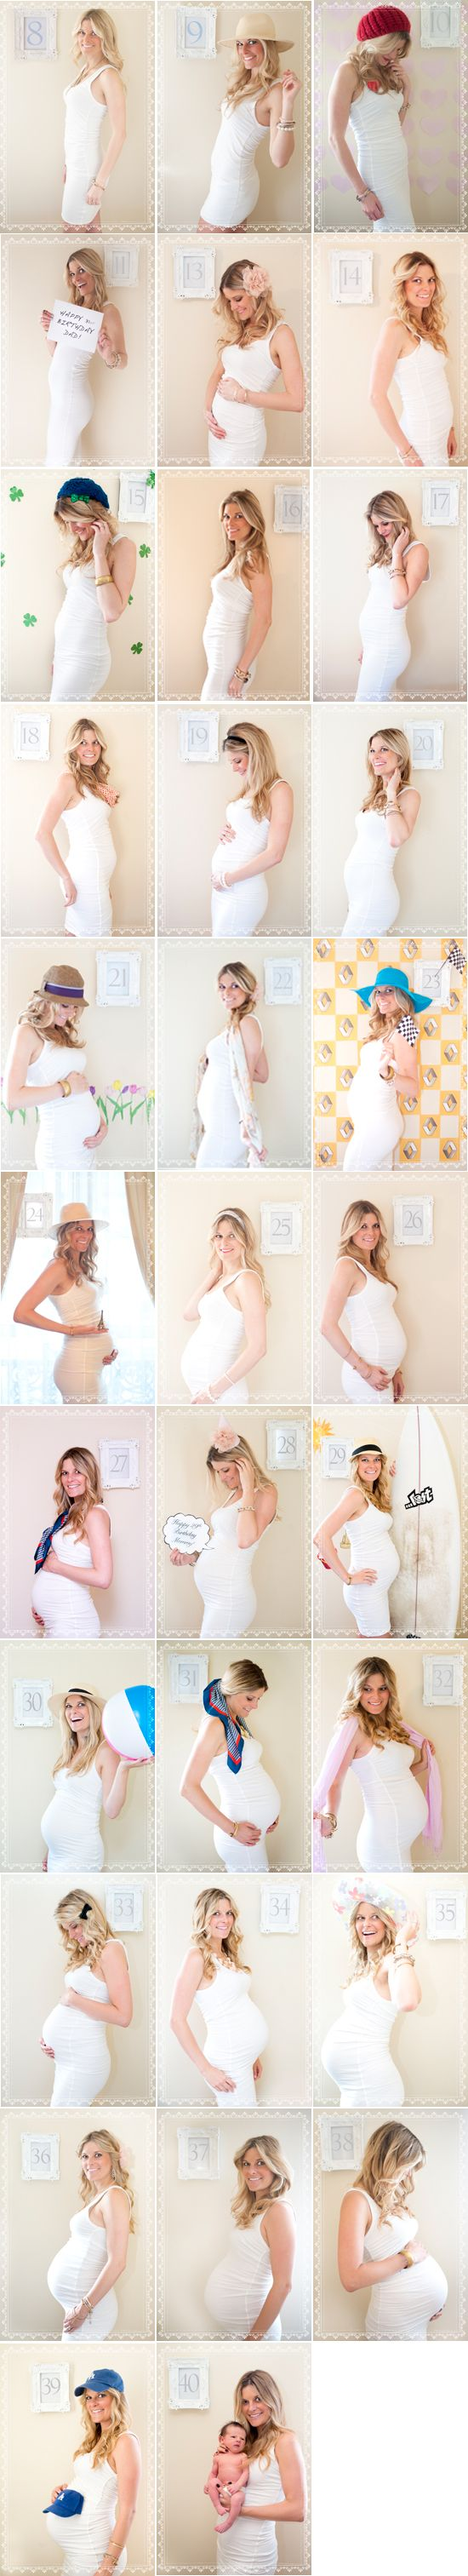 Great way to show your pregnancy progress!